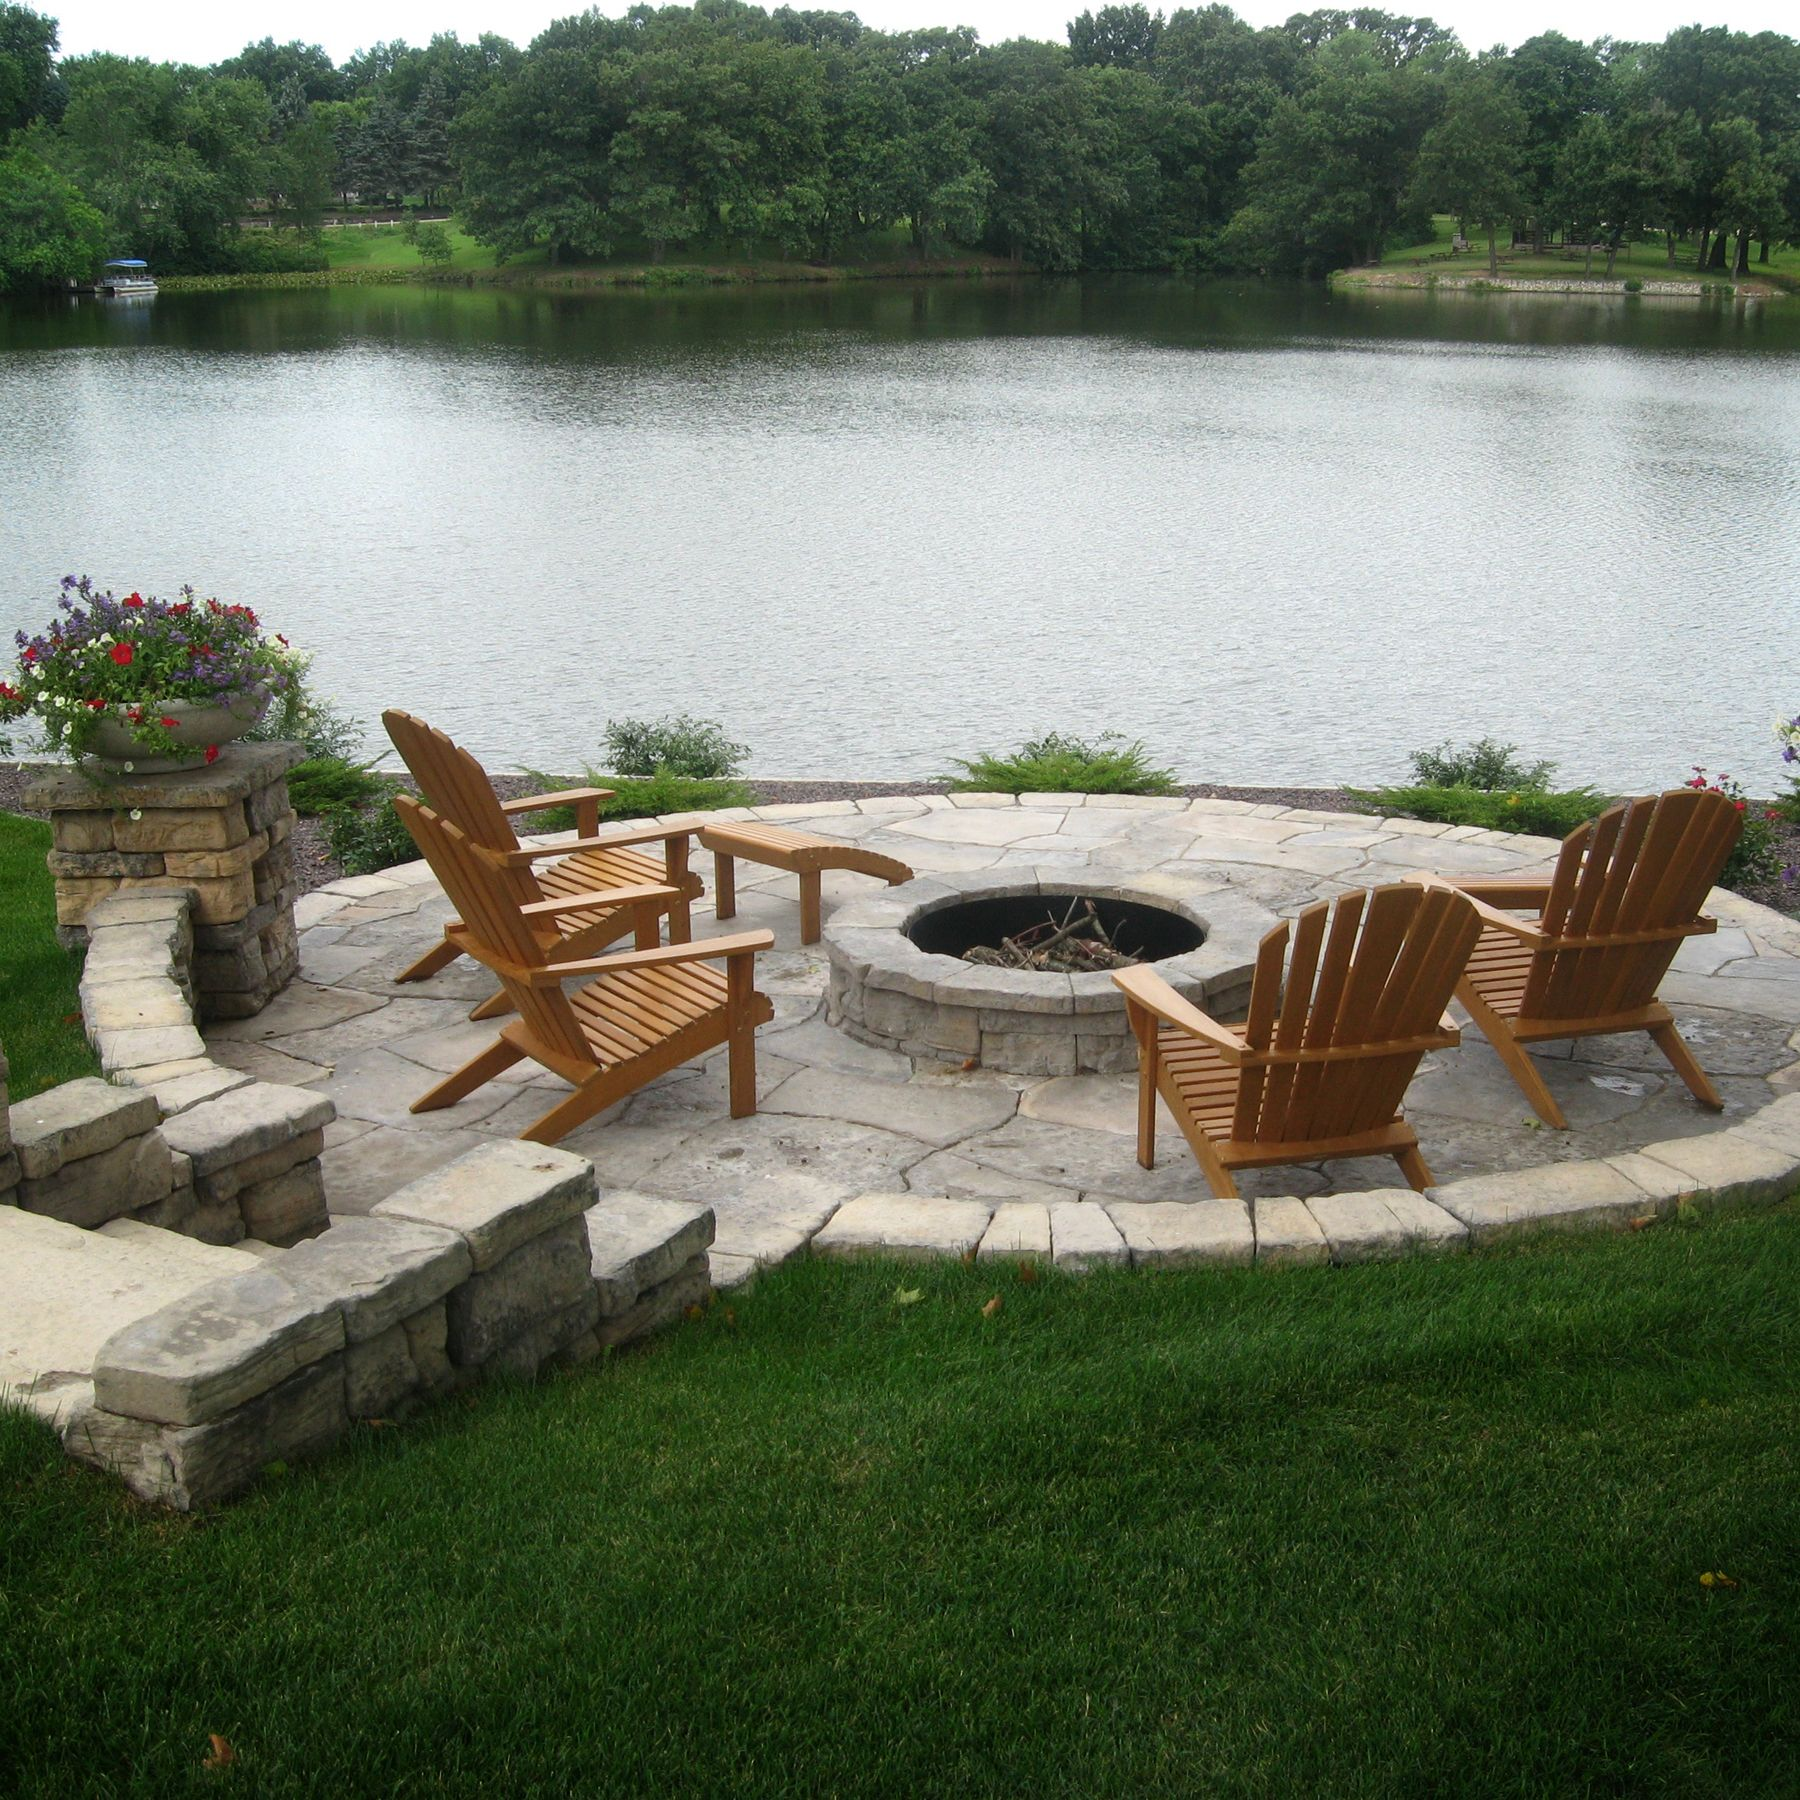 Lakeside patio with fire pit